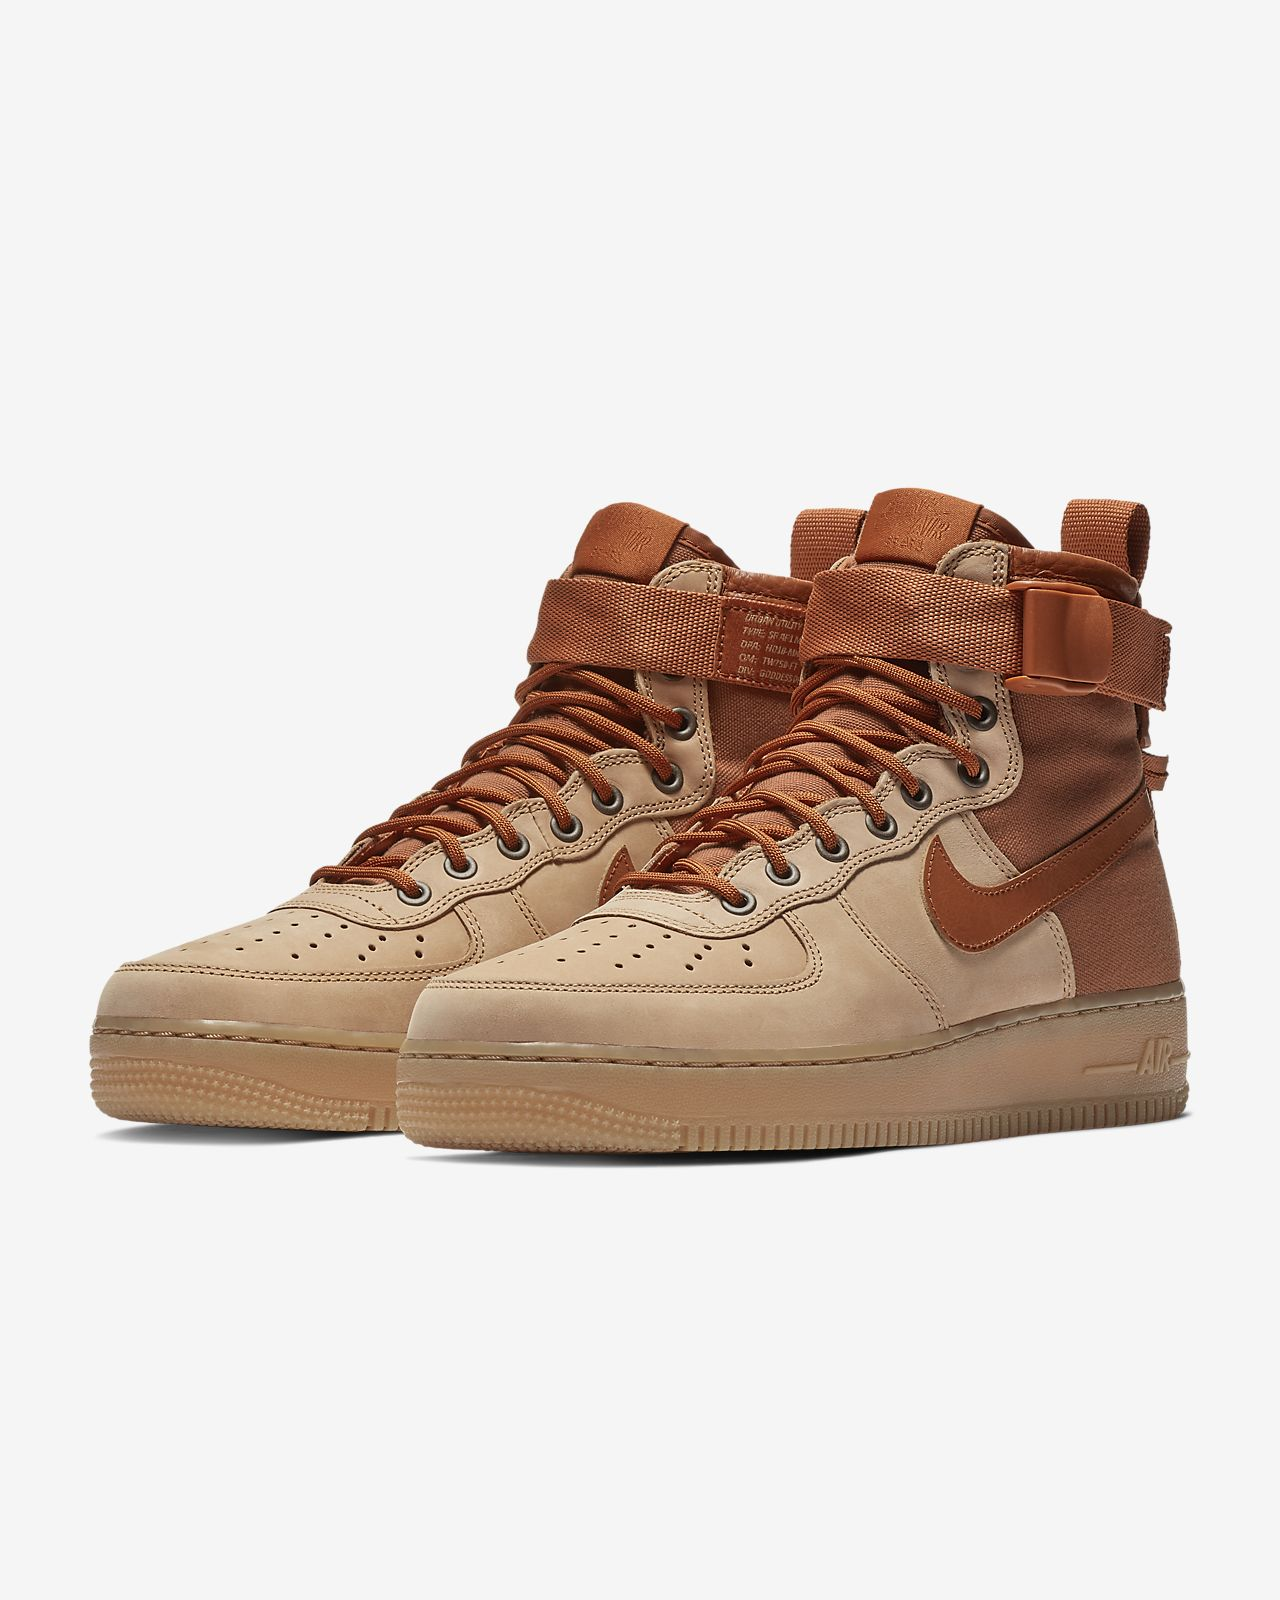 premium selection 83386 d8b7f Nike SF Air Force 1 Mid Premium Men's Shoe